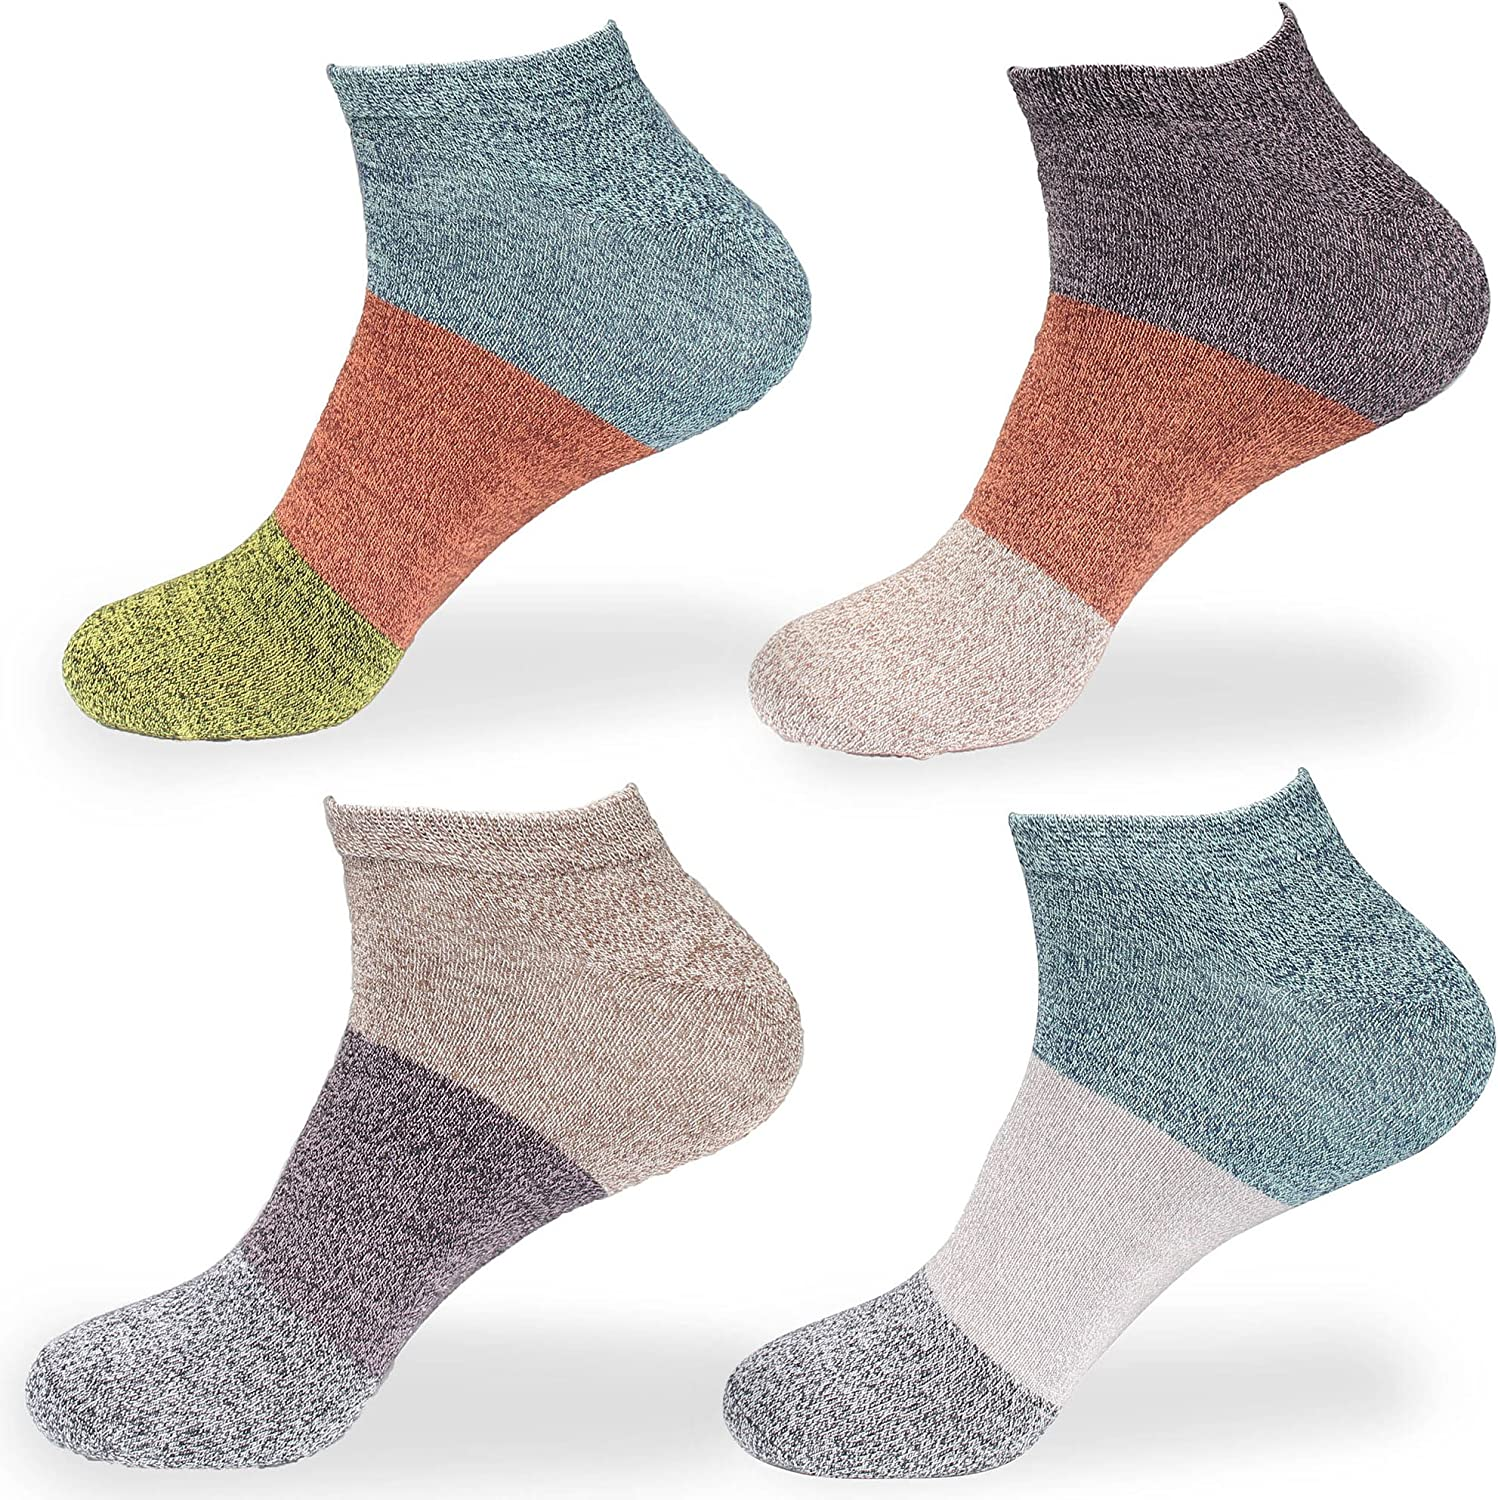 Womens Rayon from Bamboo Fiber Stripe Style Sports Superior Wicking Athletic Casual Ankle Socks